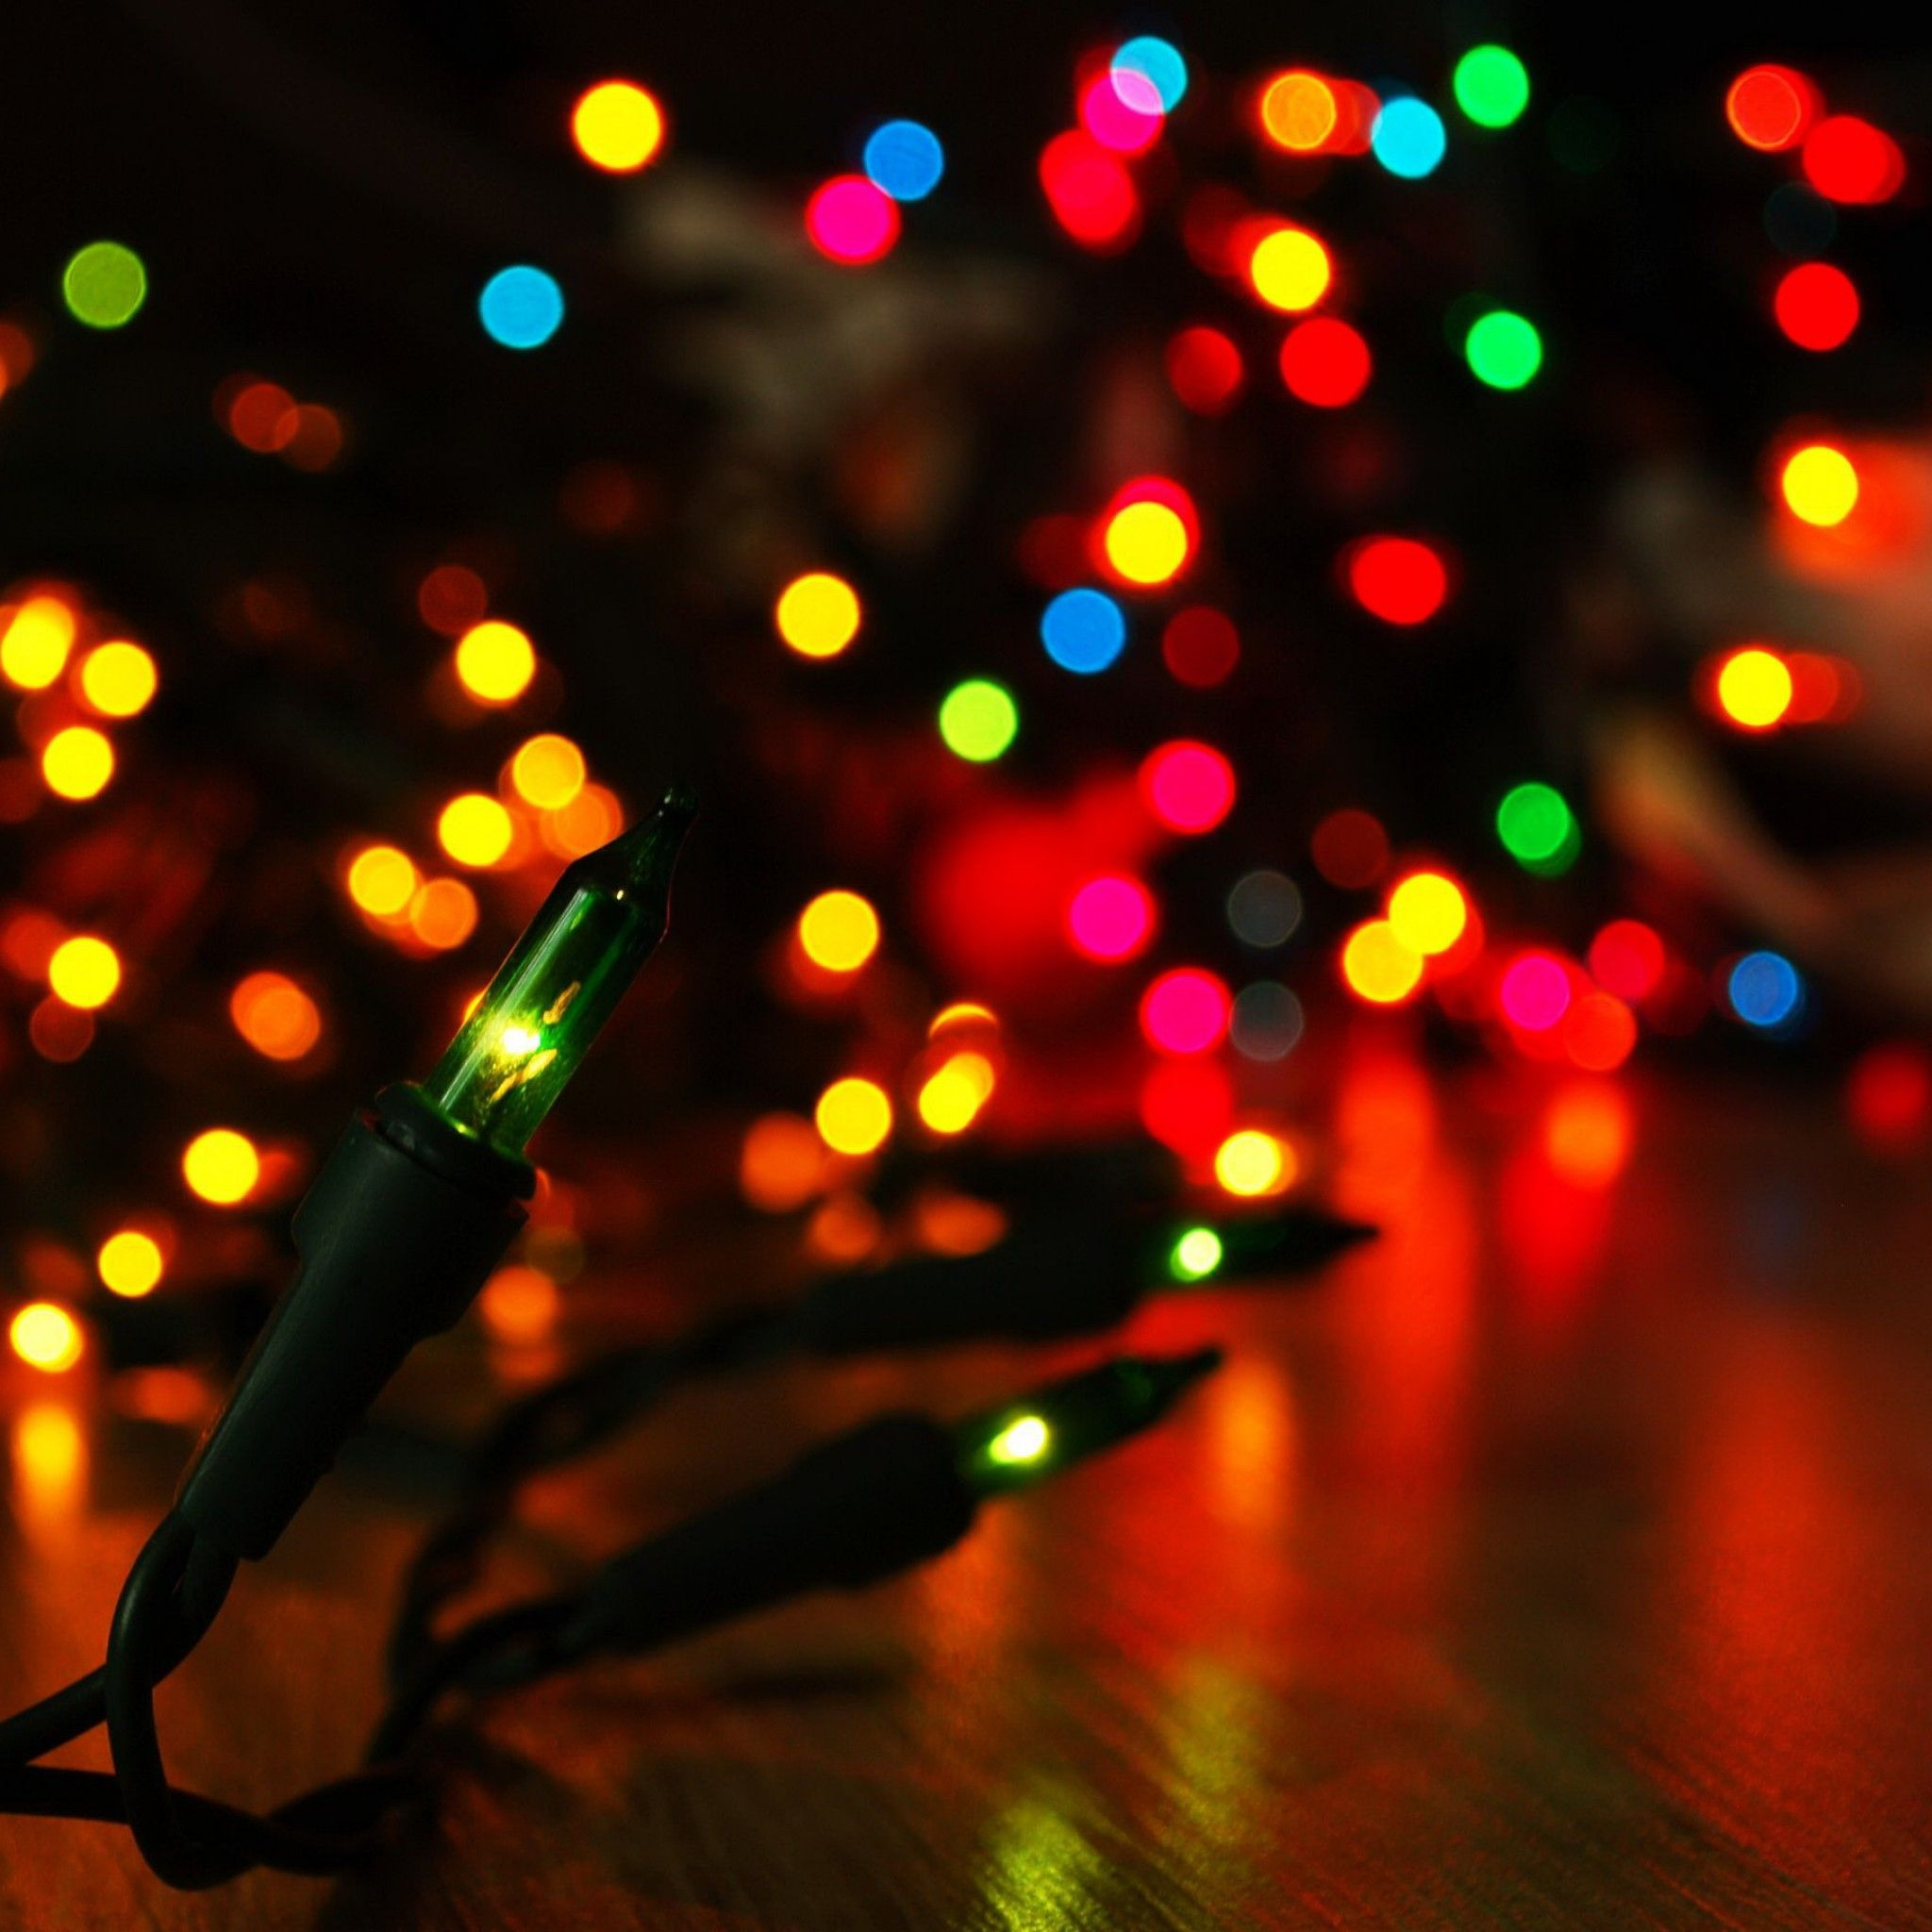 Colorful Christmas Lights Background.Pin On Christmas